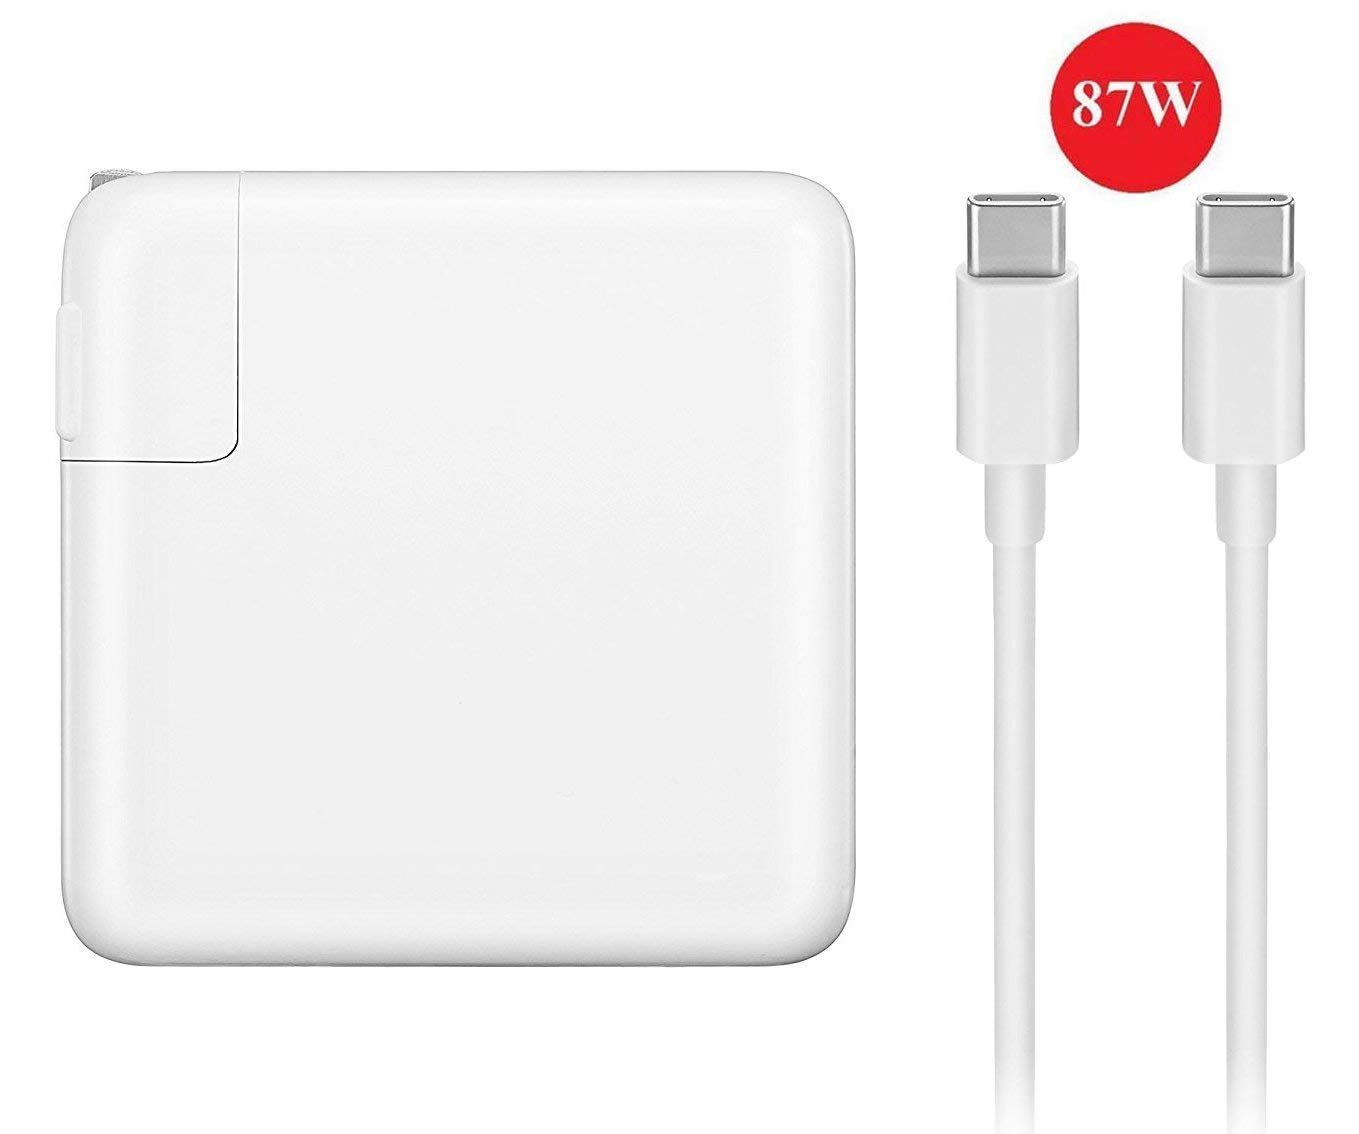 Ewayfa USB-C 87W Power Adapter Charger, with USB-C to USB-C Charger Cable(2M).